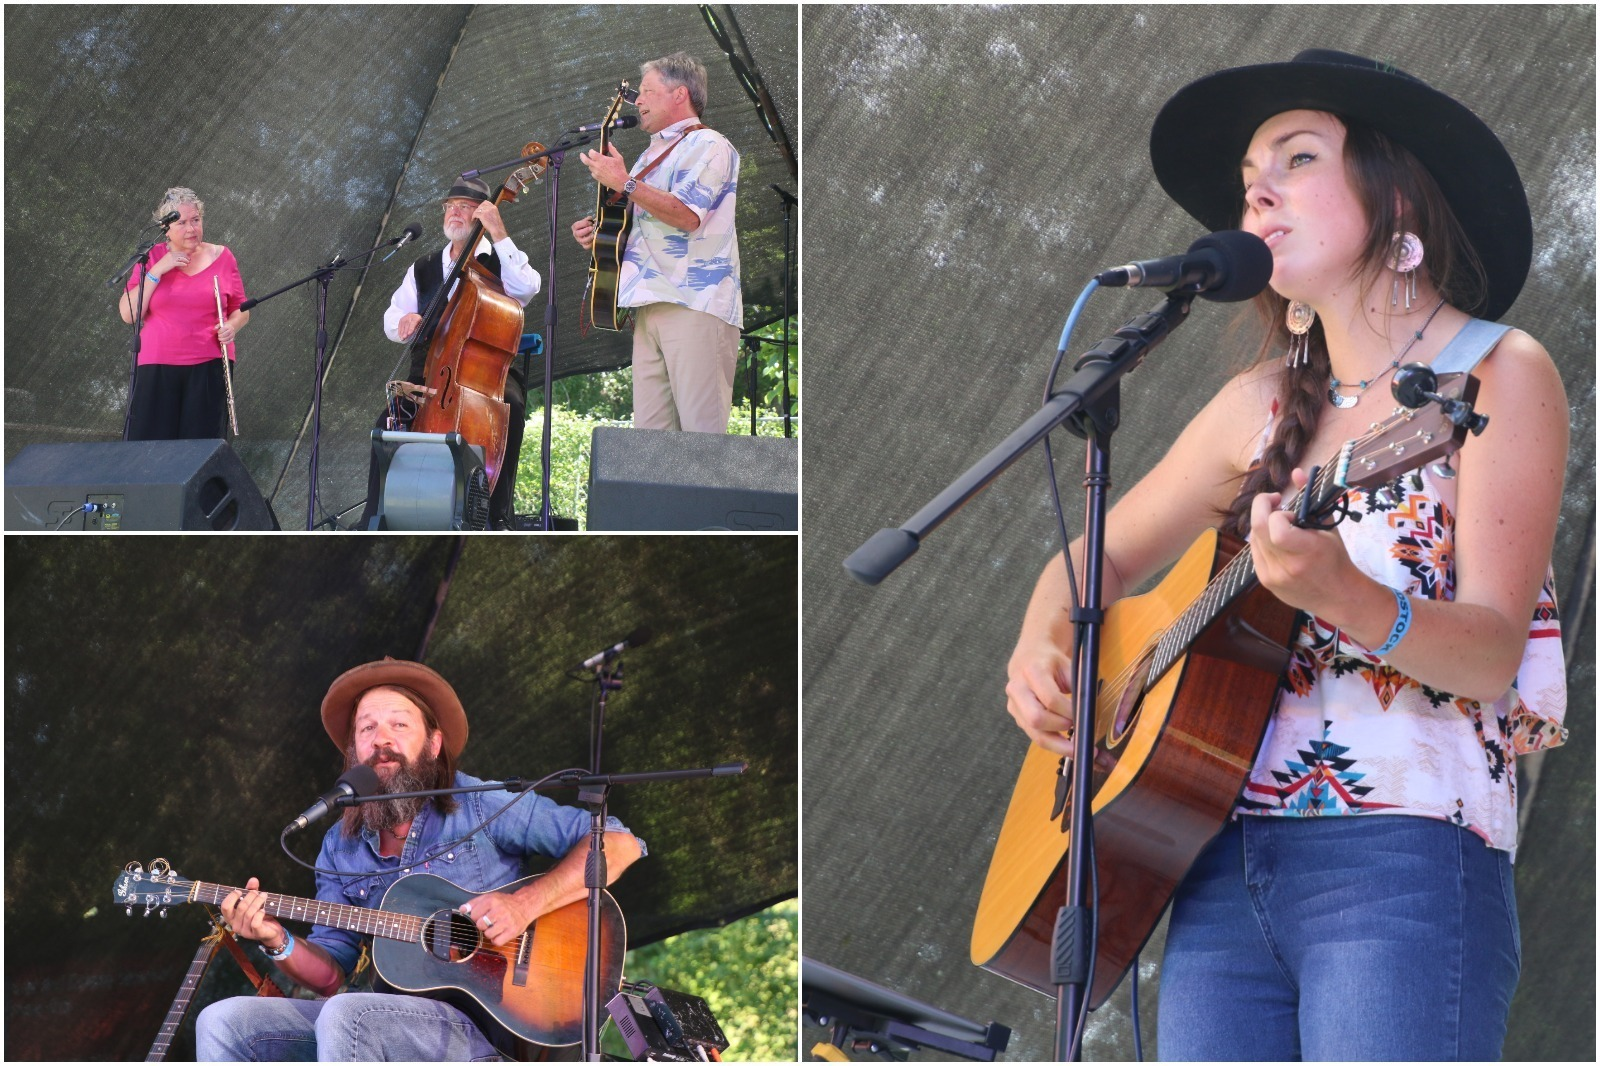 Musicians perform at Nowoodstock, one of the best music festivals in Wyoming.